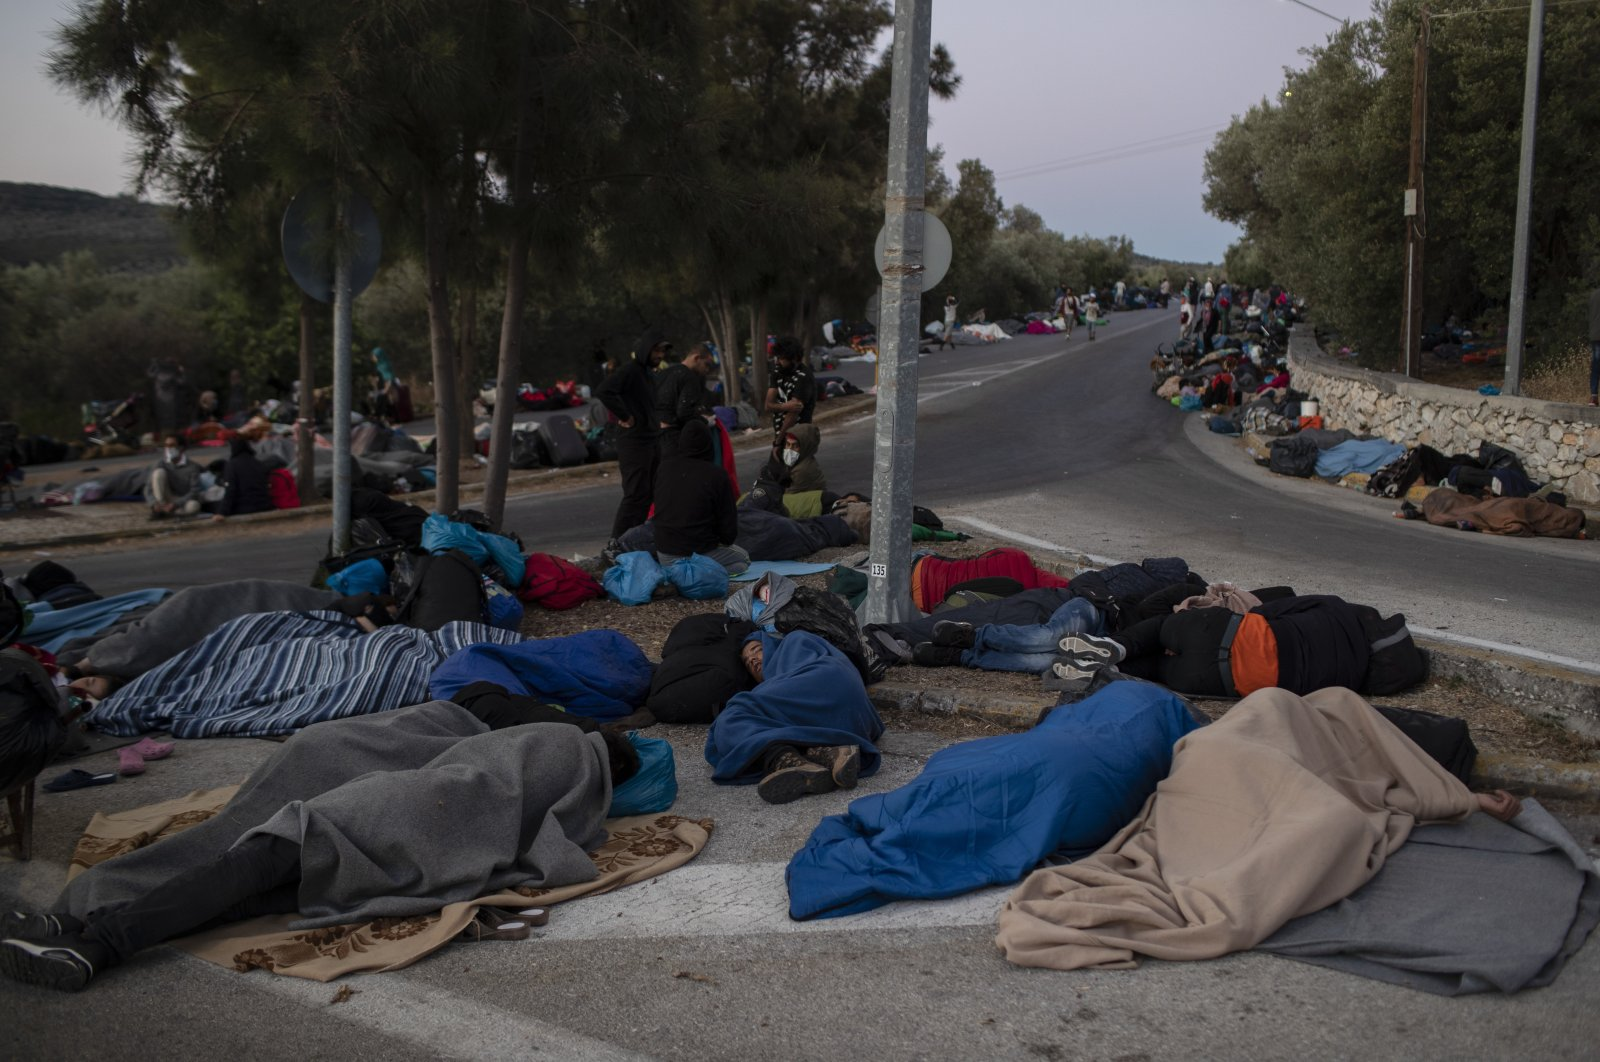 Refugees and migrants sleep on a street near the destroyed Moria camp following a fire, on Lesbos island, Greece, Sept. 10, 2020. (AP Photo)